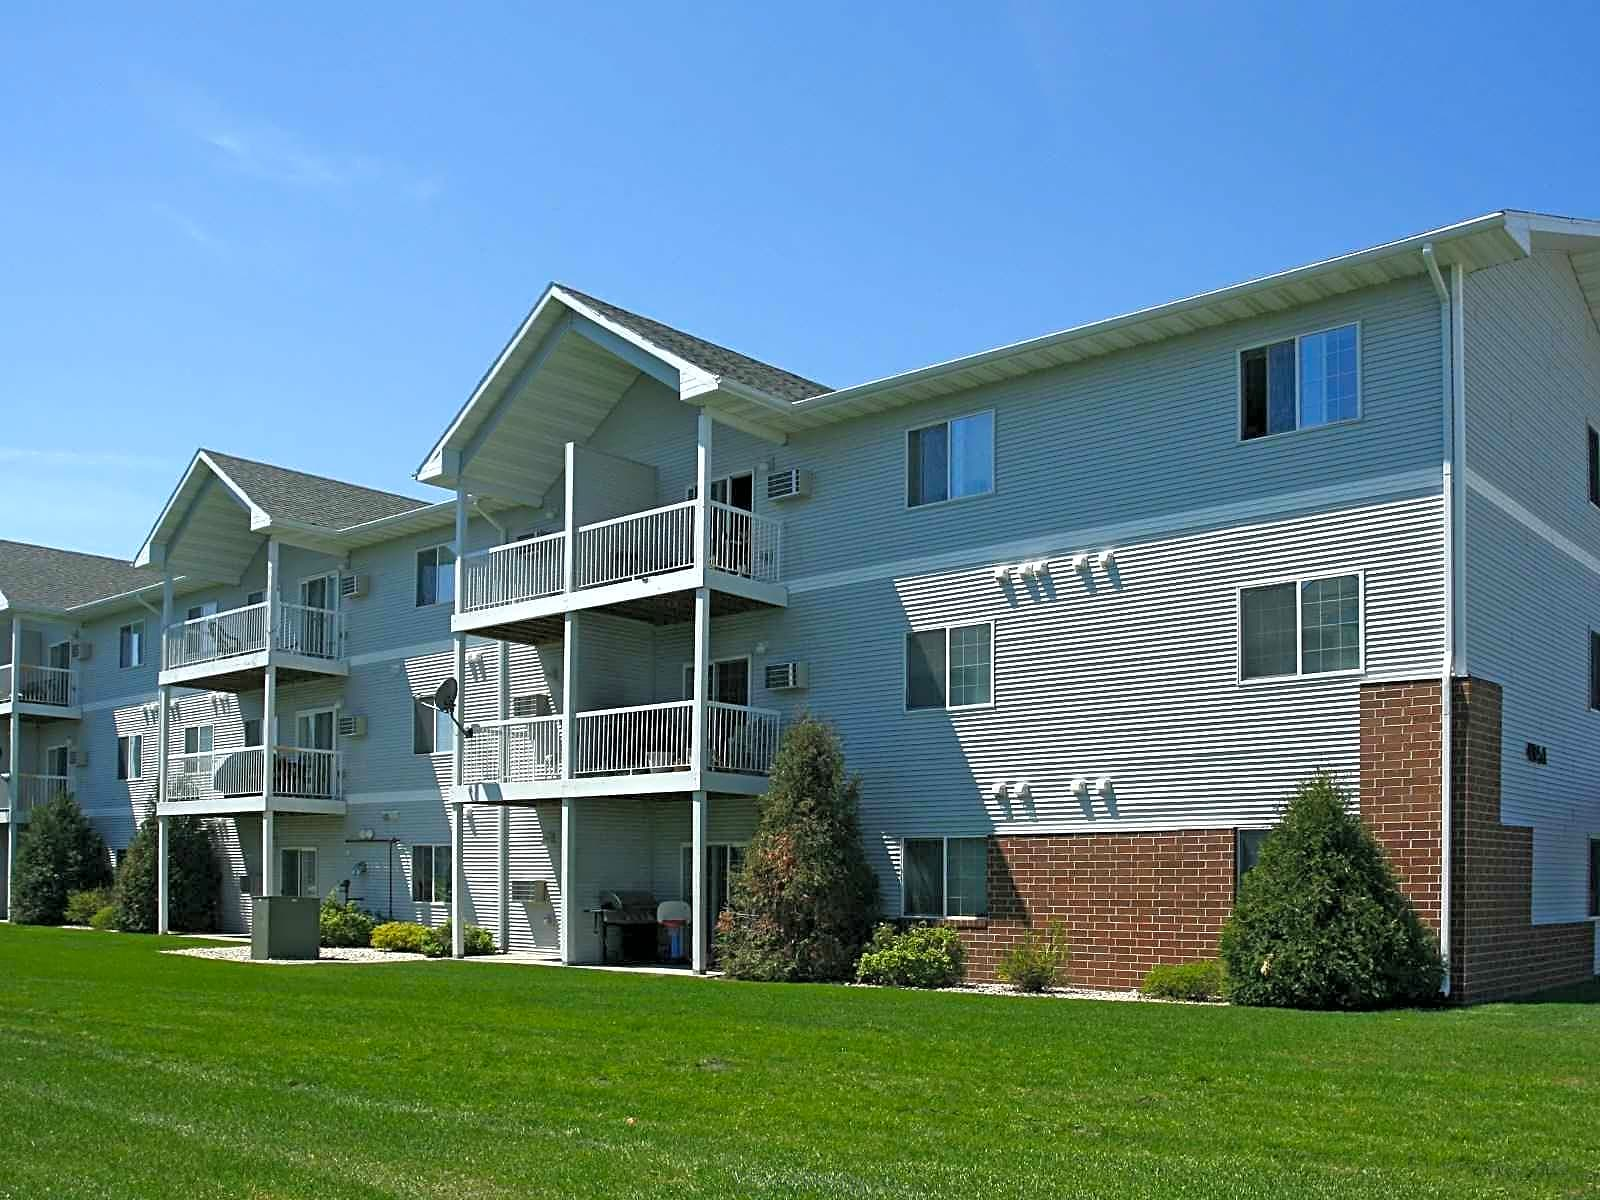 Apartments Near NDSU Osgood Townsite Apartments and Townhomes for North Dakota State University Students in Fargo, ND